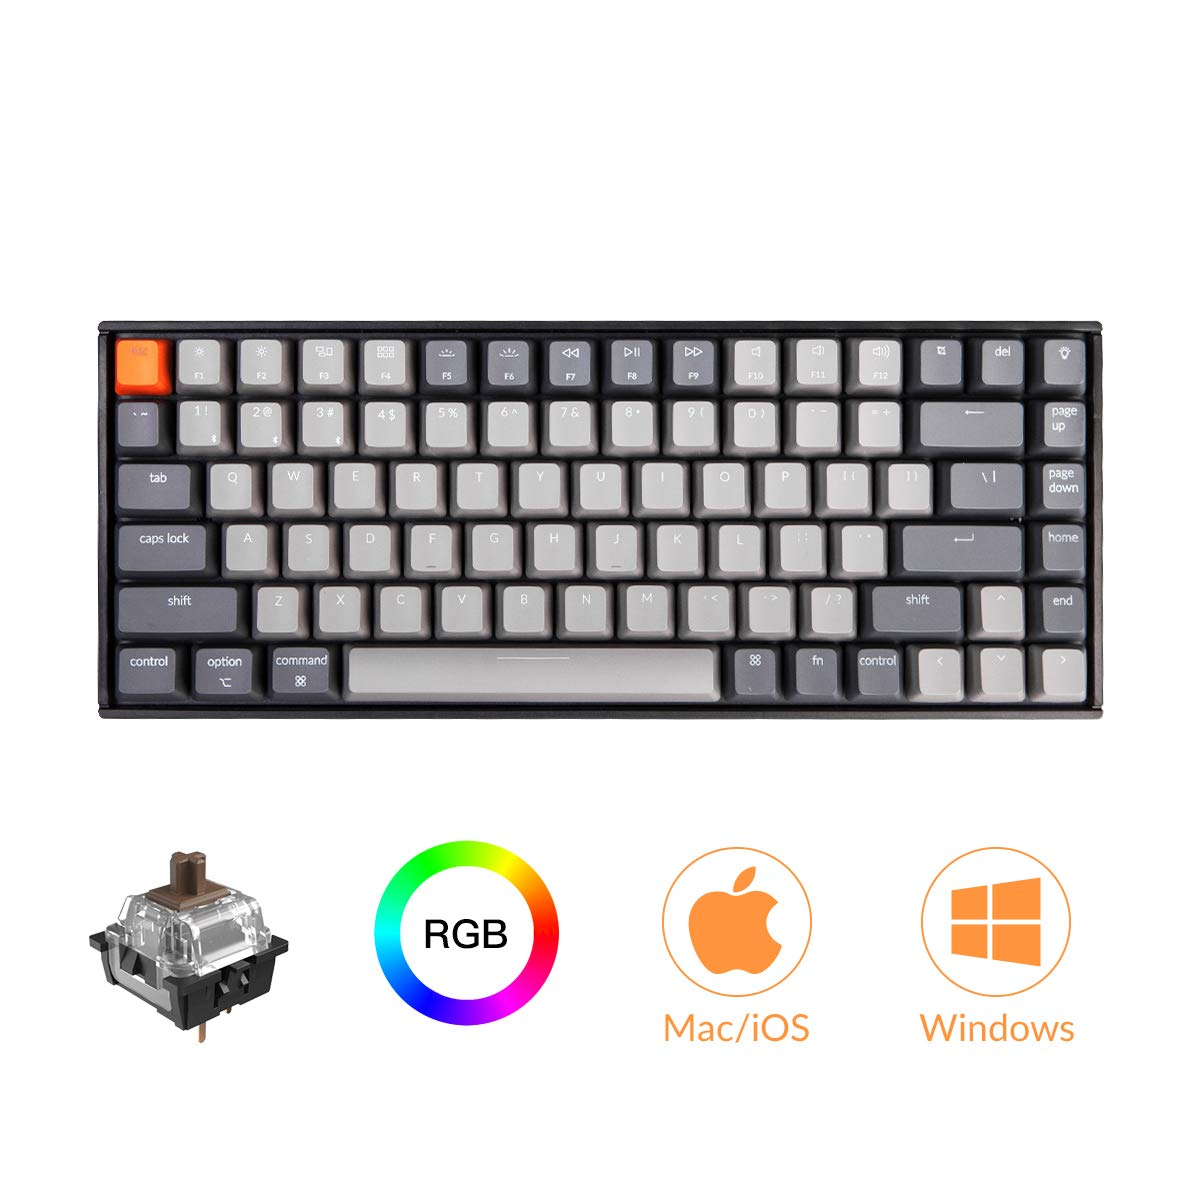 Keychron K2 RGB Wireless Mechanical Gaming Keyboard with Gateron Brown Switch USB Wired Anti Ghosting 84 Key N-Key Rollover, Bluetooth Computer Keyboard for Mac Windows PC Gamer